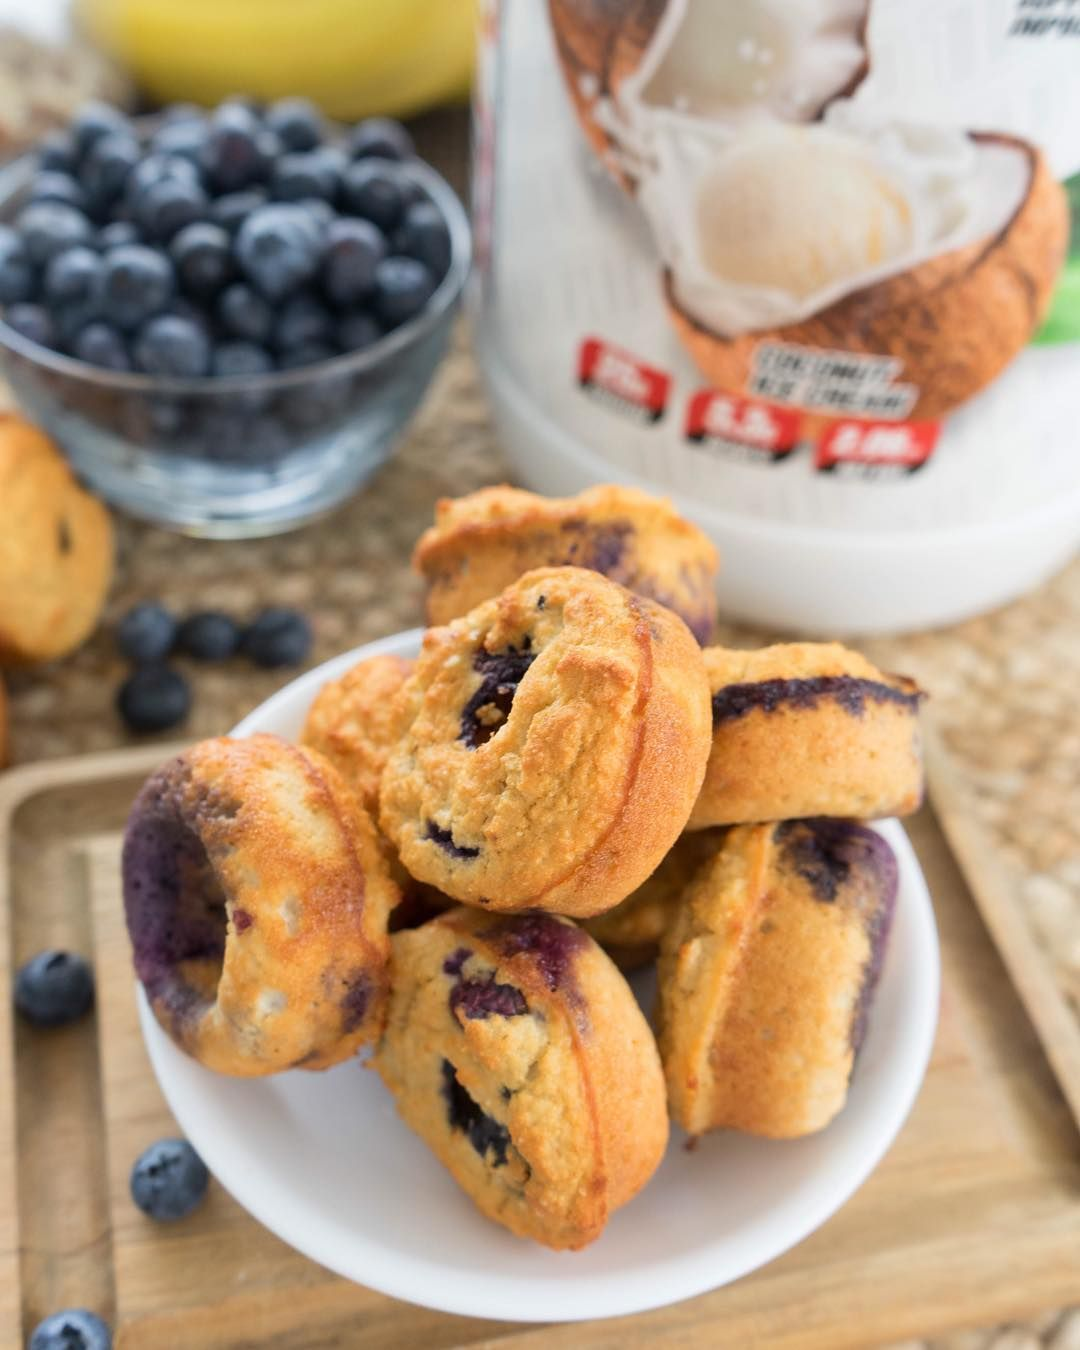 1 Up Nutrition Made In Usa On Instagram Blueberry Protein Muffins Ingredients 1 3 Cup Oat Fl Blueberry Protein Muffins Protein Muffins Almond Flour